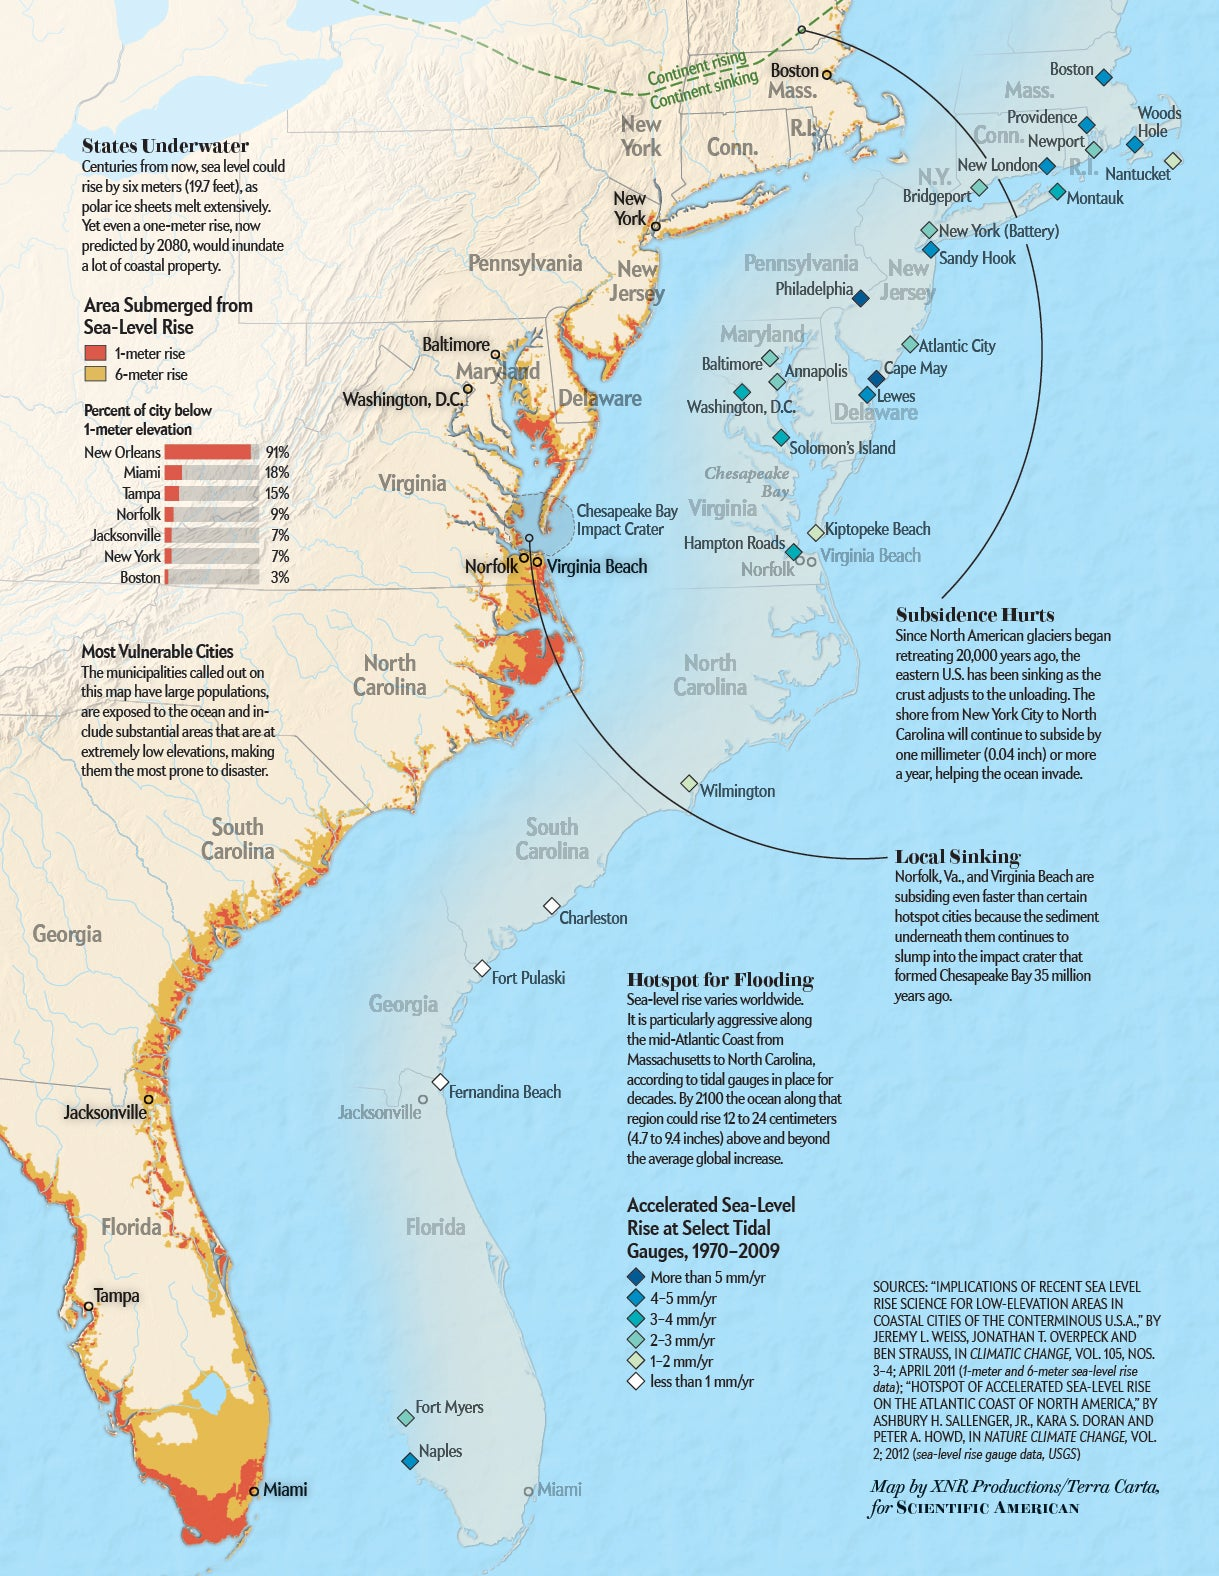 The East Coast Is Extremely Vulnerable to Hurricane Flooding ...